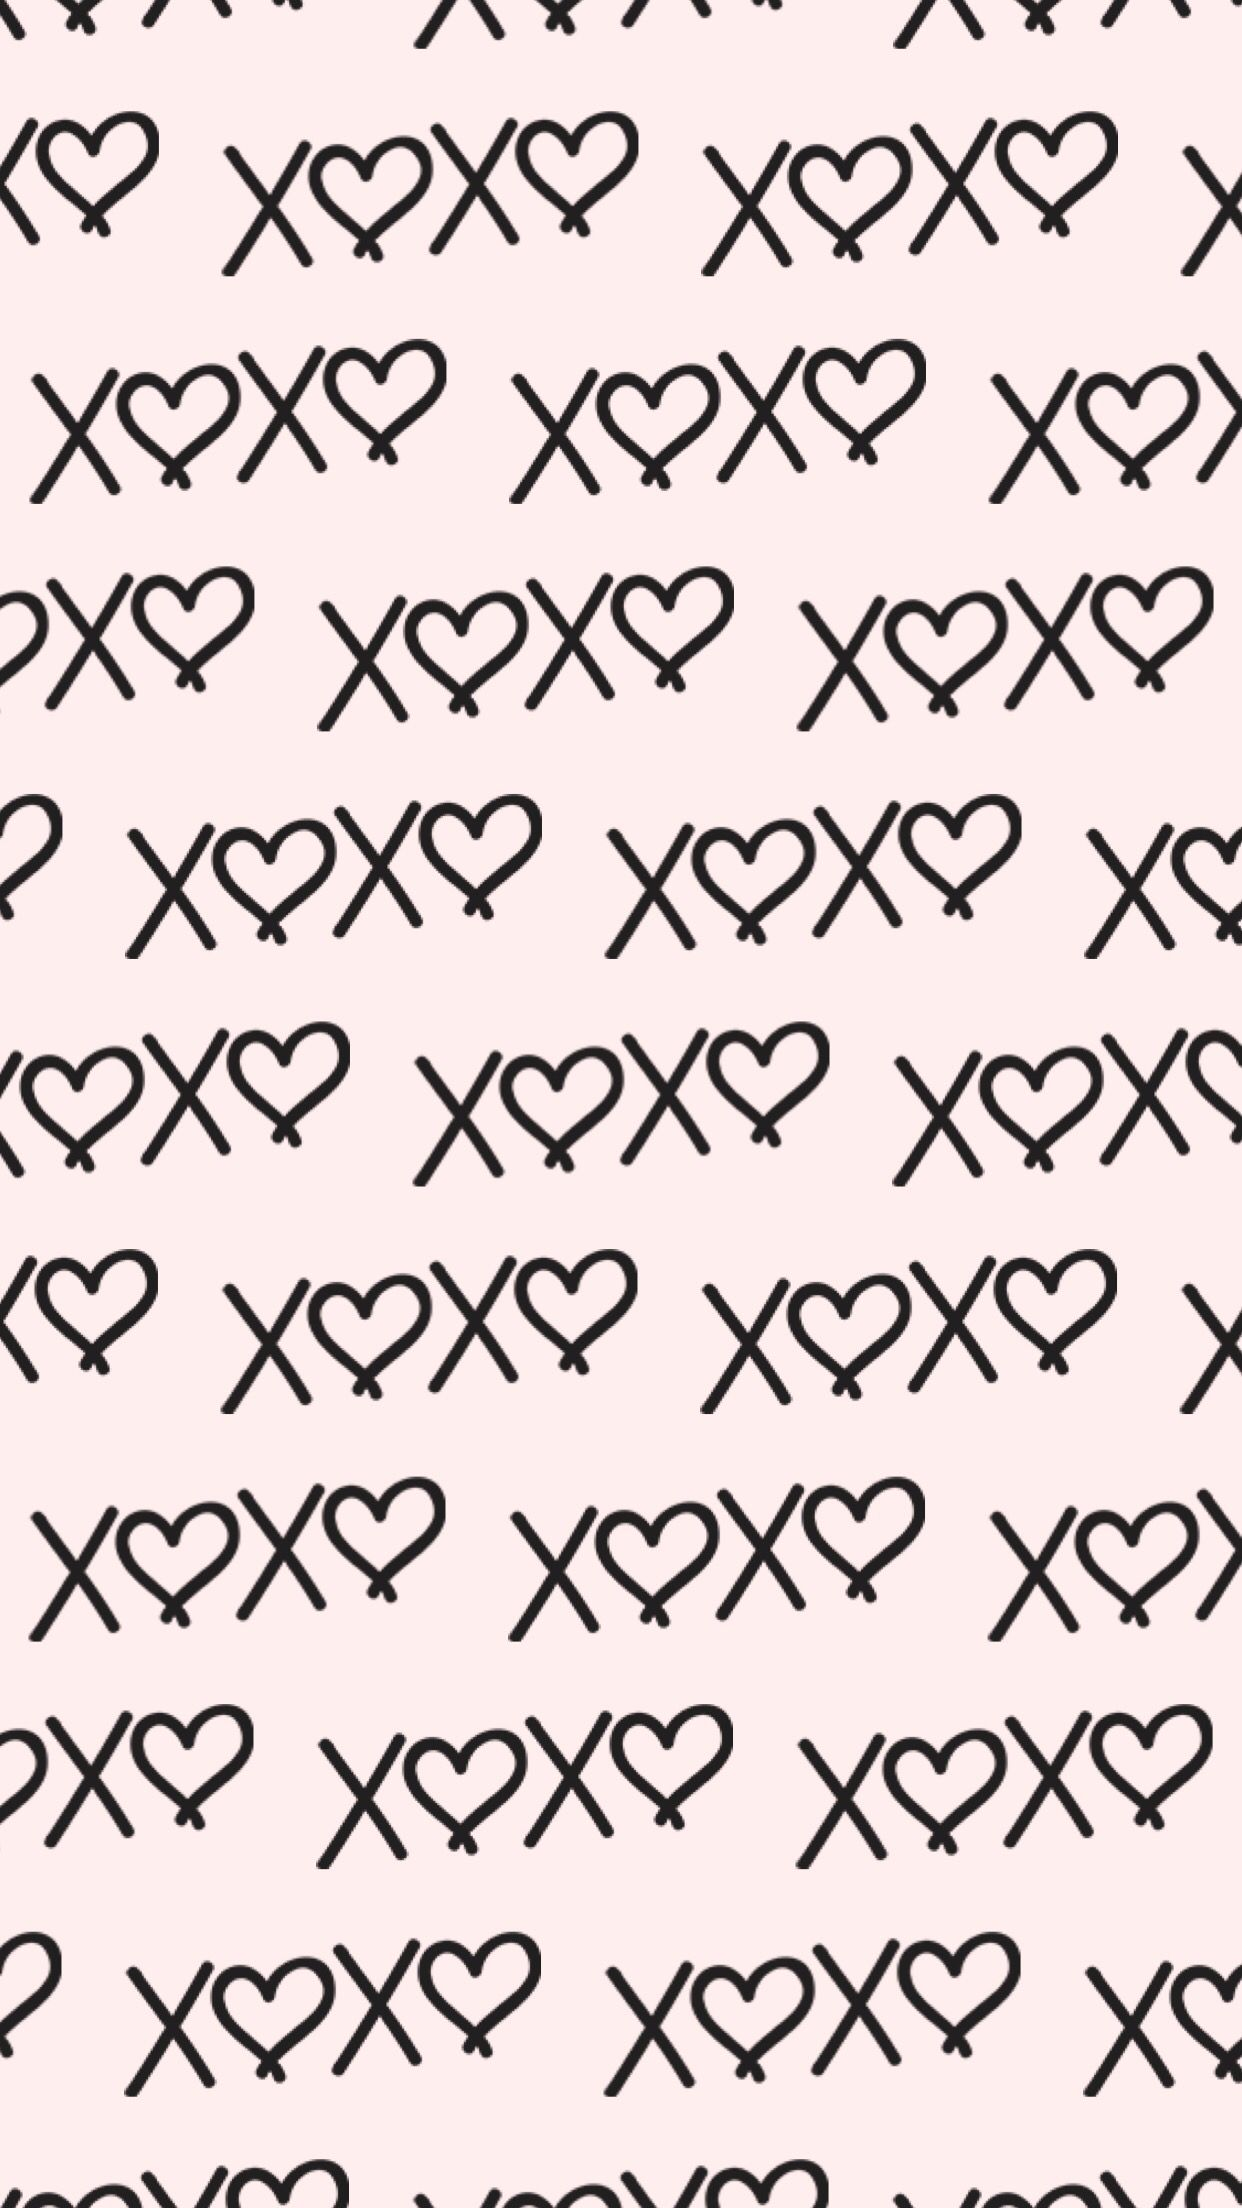 XOXO wallpaper background HD iPhone Android iPad Cute